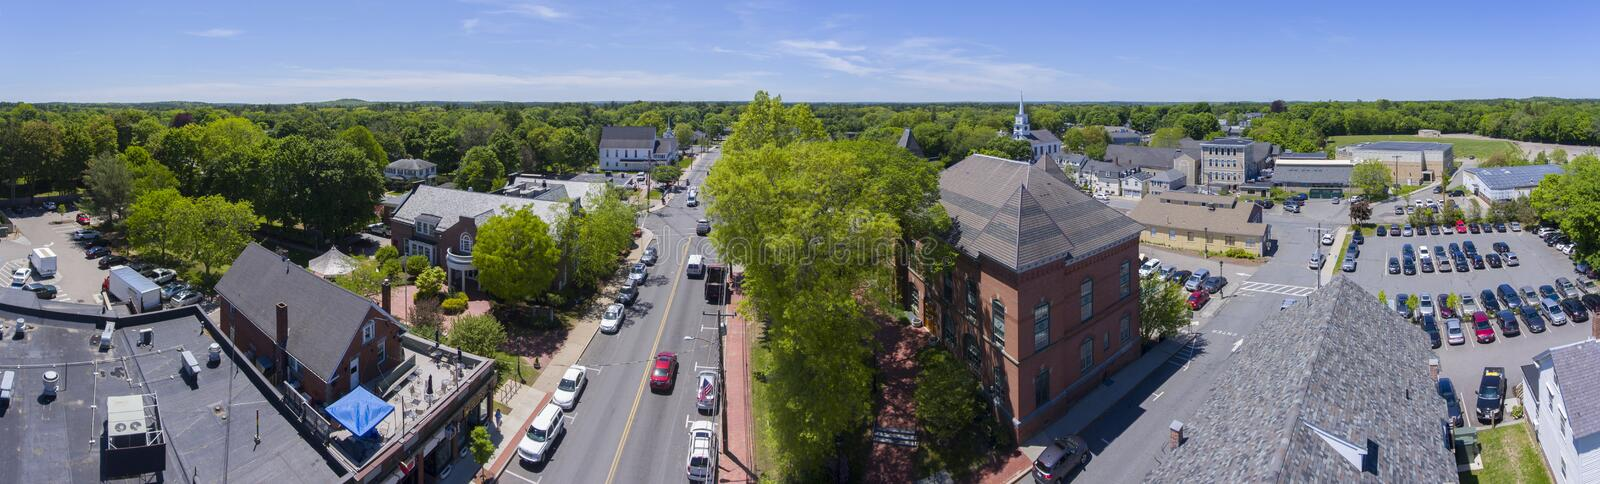 Medfield Town Hall, Massachusetts, USA. Medfield town hall panorama aerial view on Main Street at the town center of Medfield in Boston Metro West area stock photography